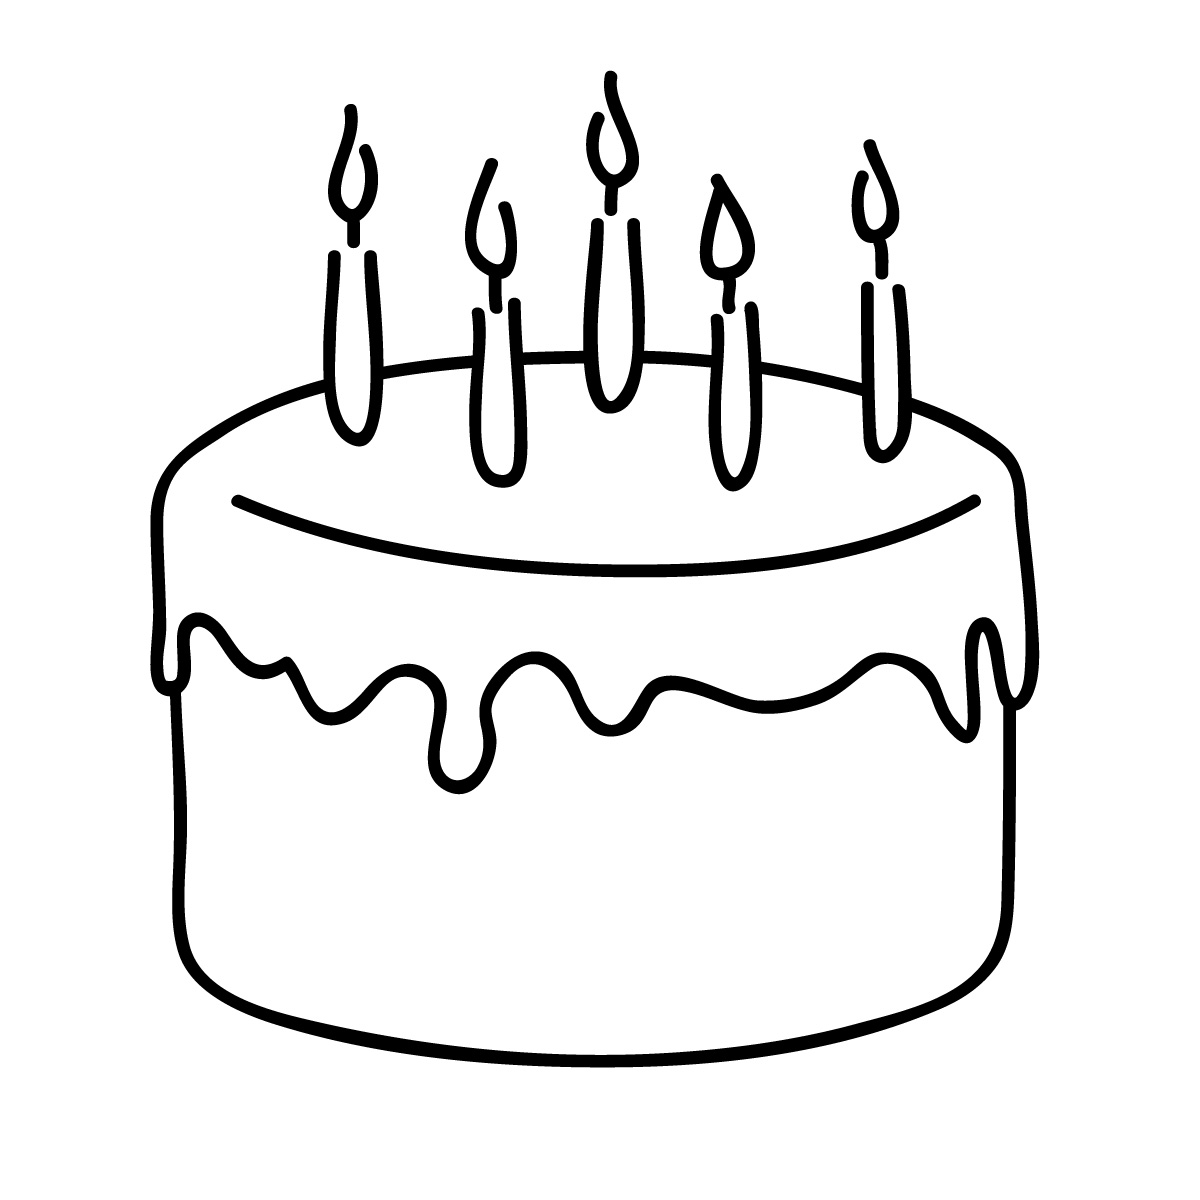 C2302754448 4 besides Happy further 3 in addition Cake Clip Art Image 14013 furthermore 18577417188283539. on 75th birthday cartoons